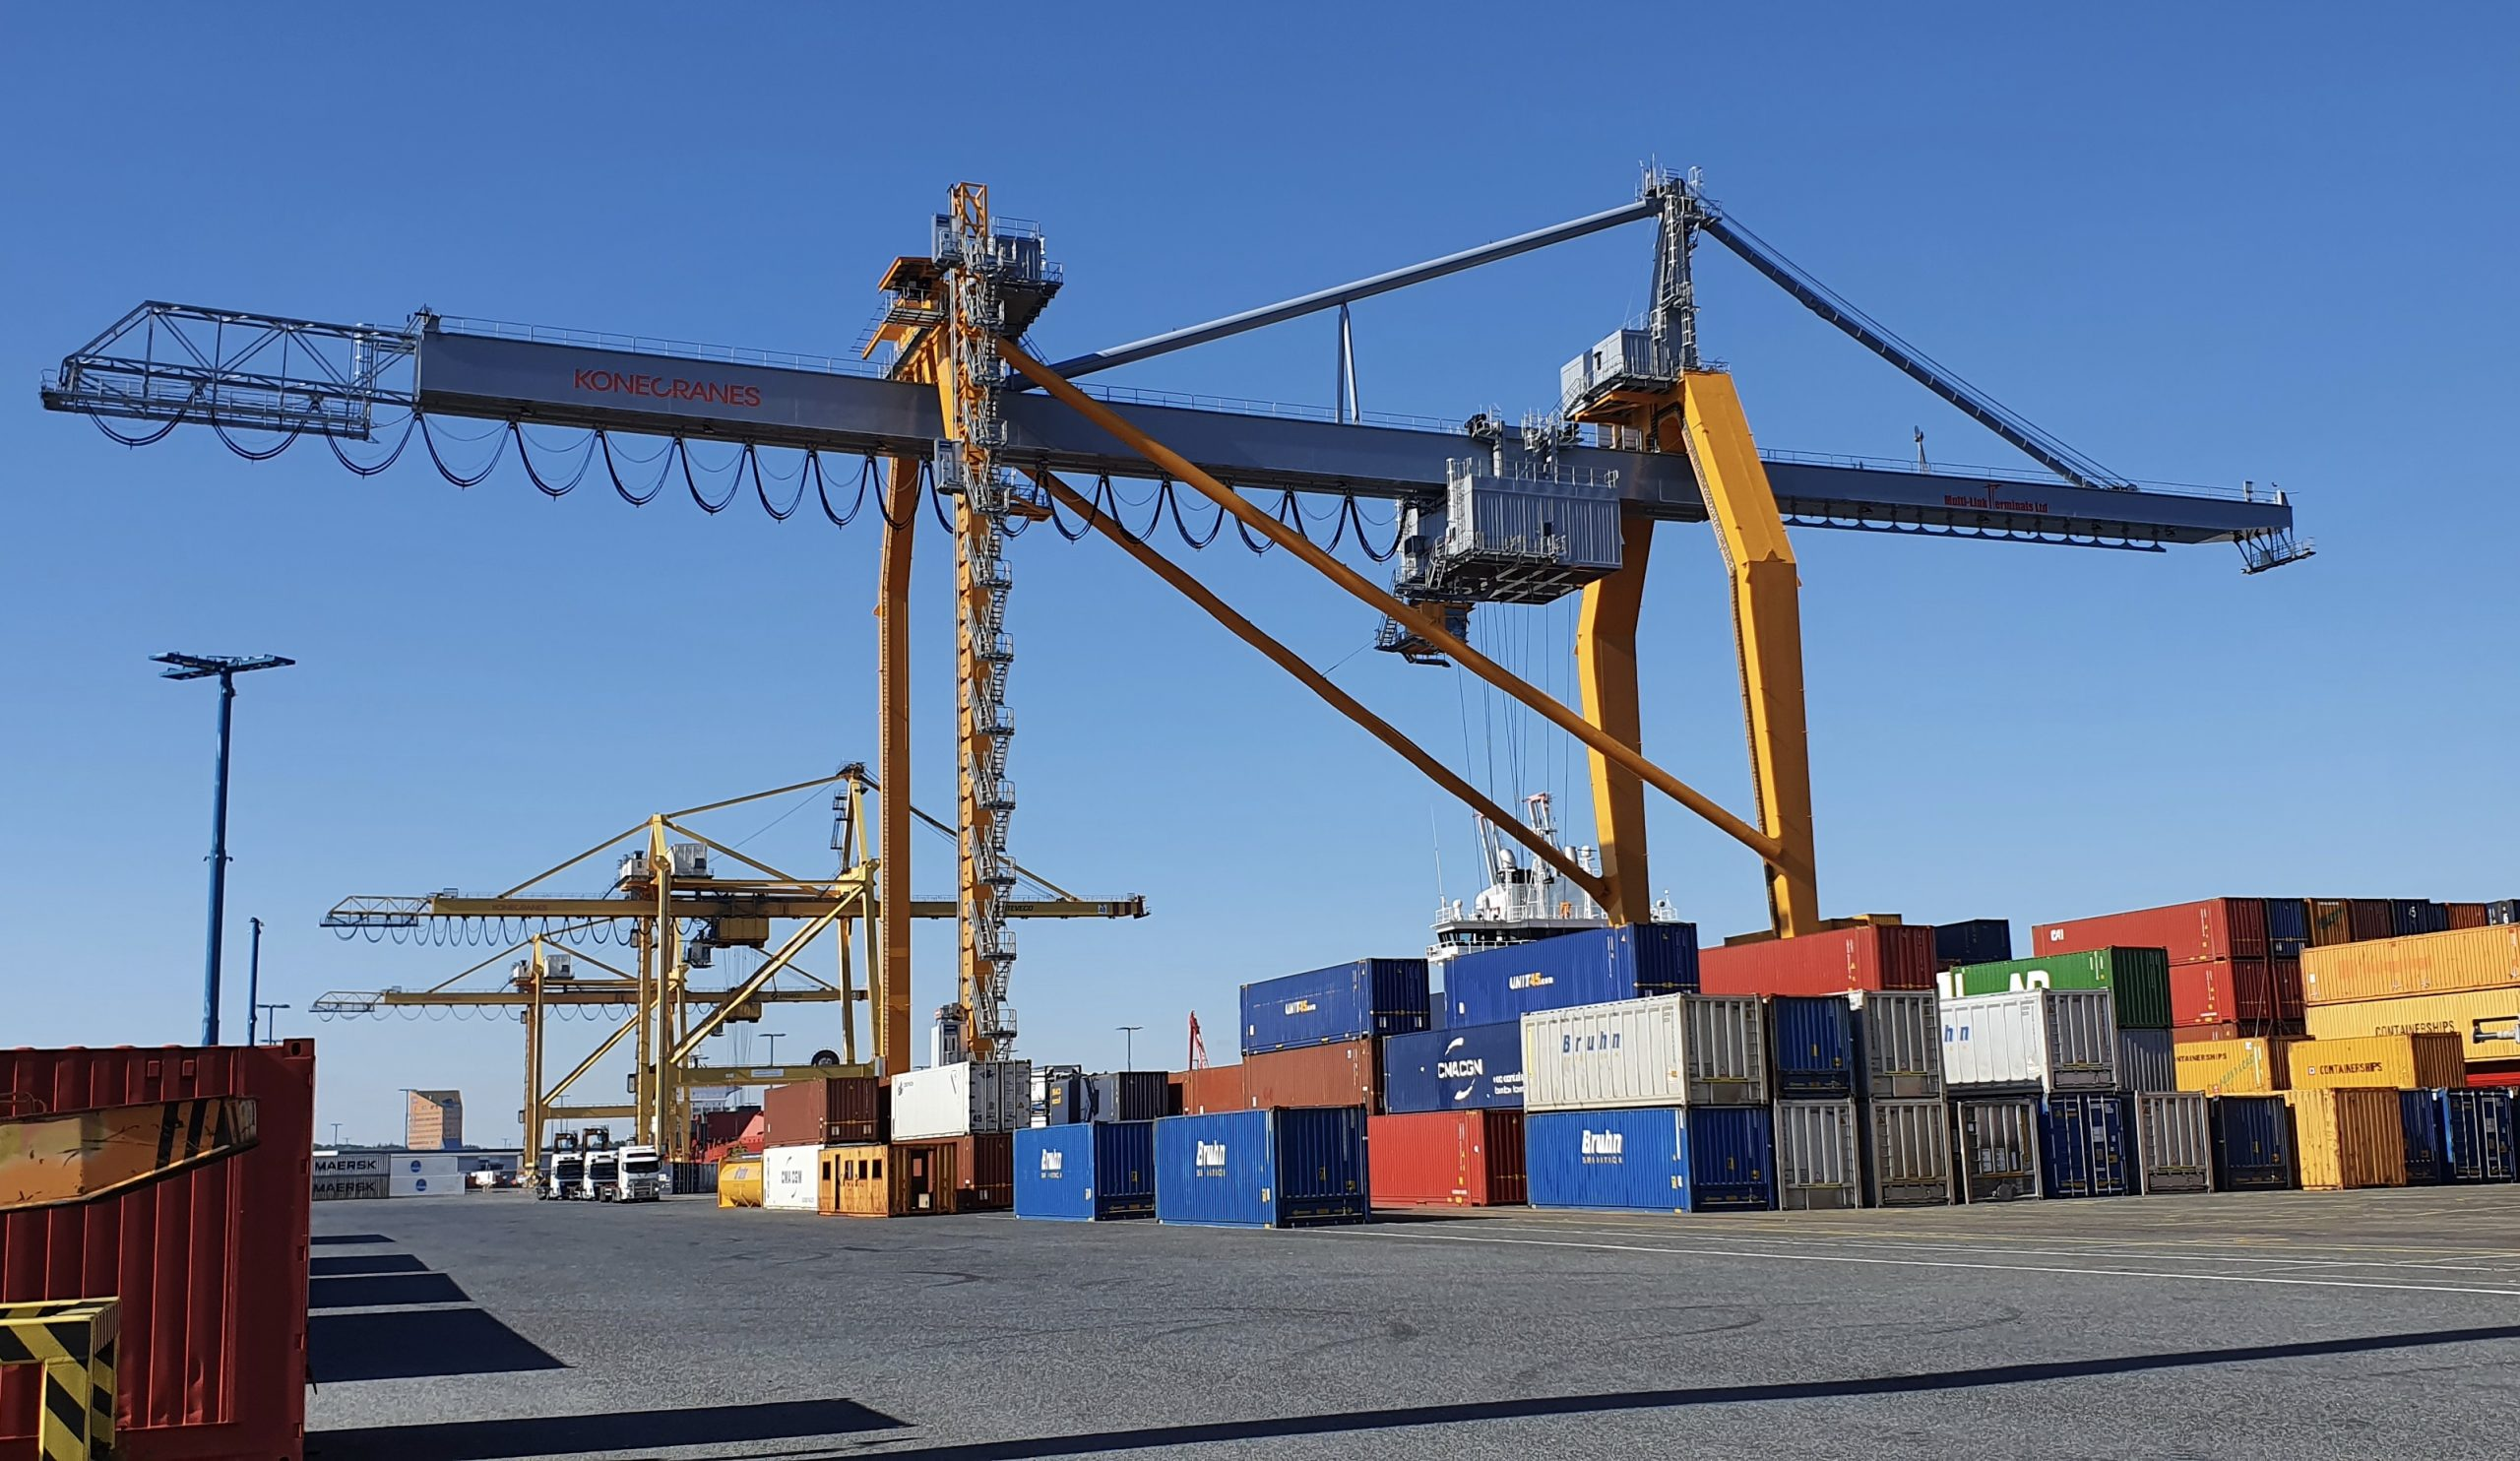 Global Ports upgrades equipment at its Finnish terminals